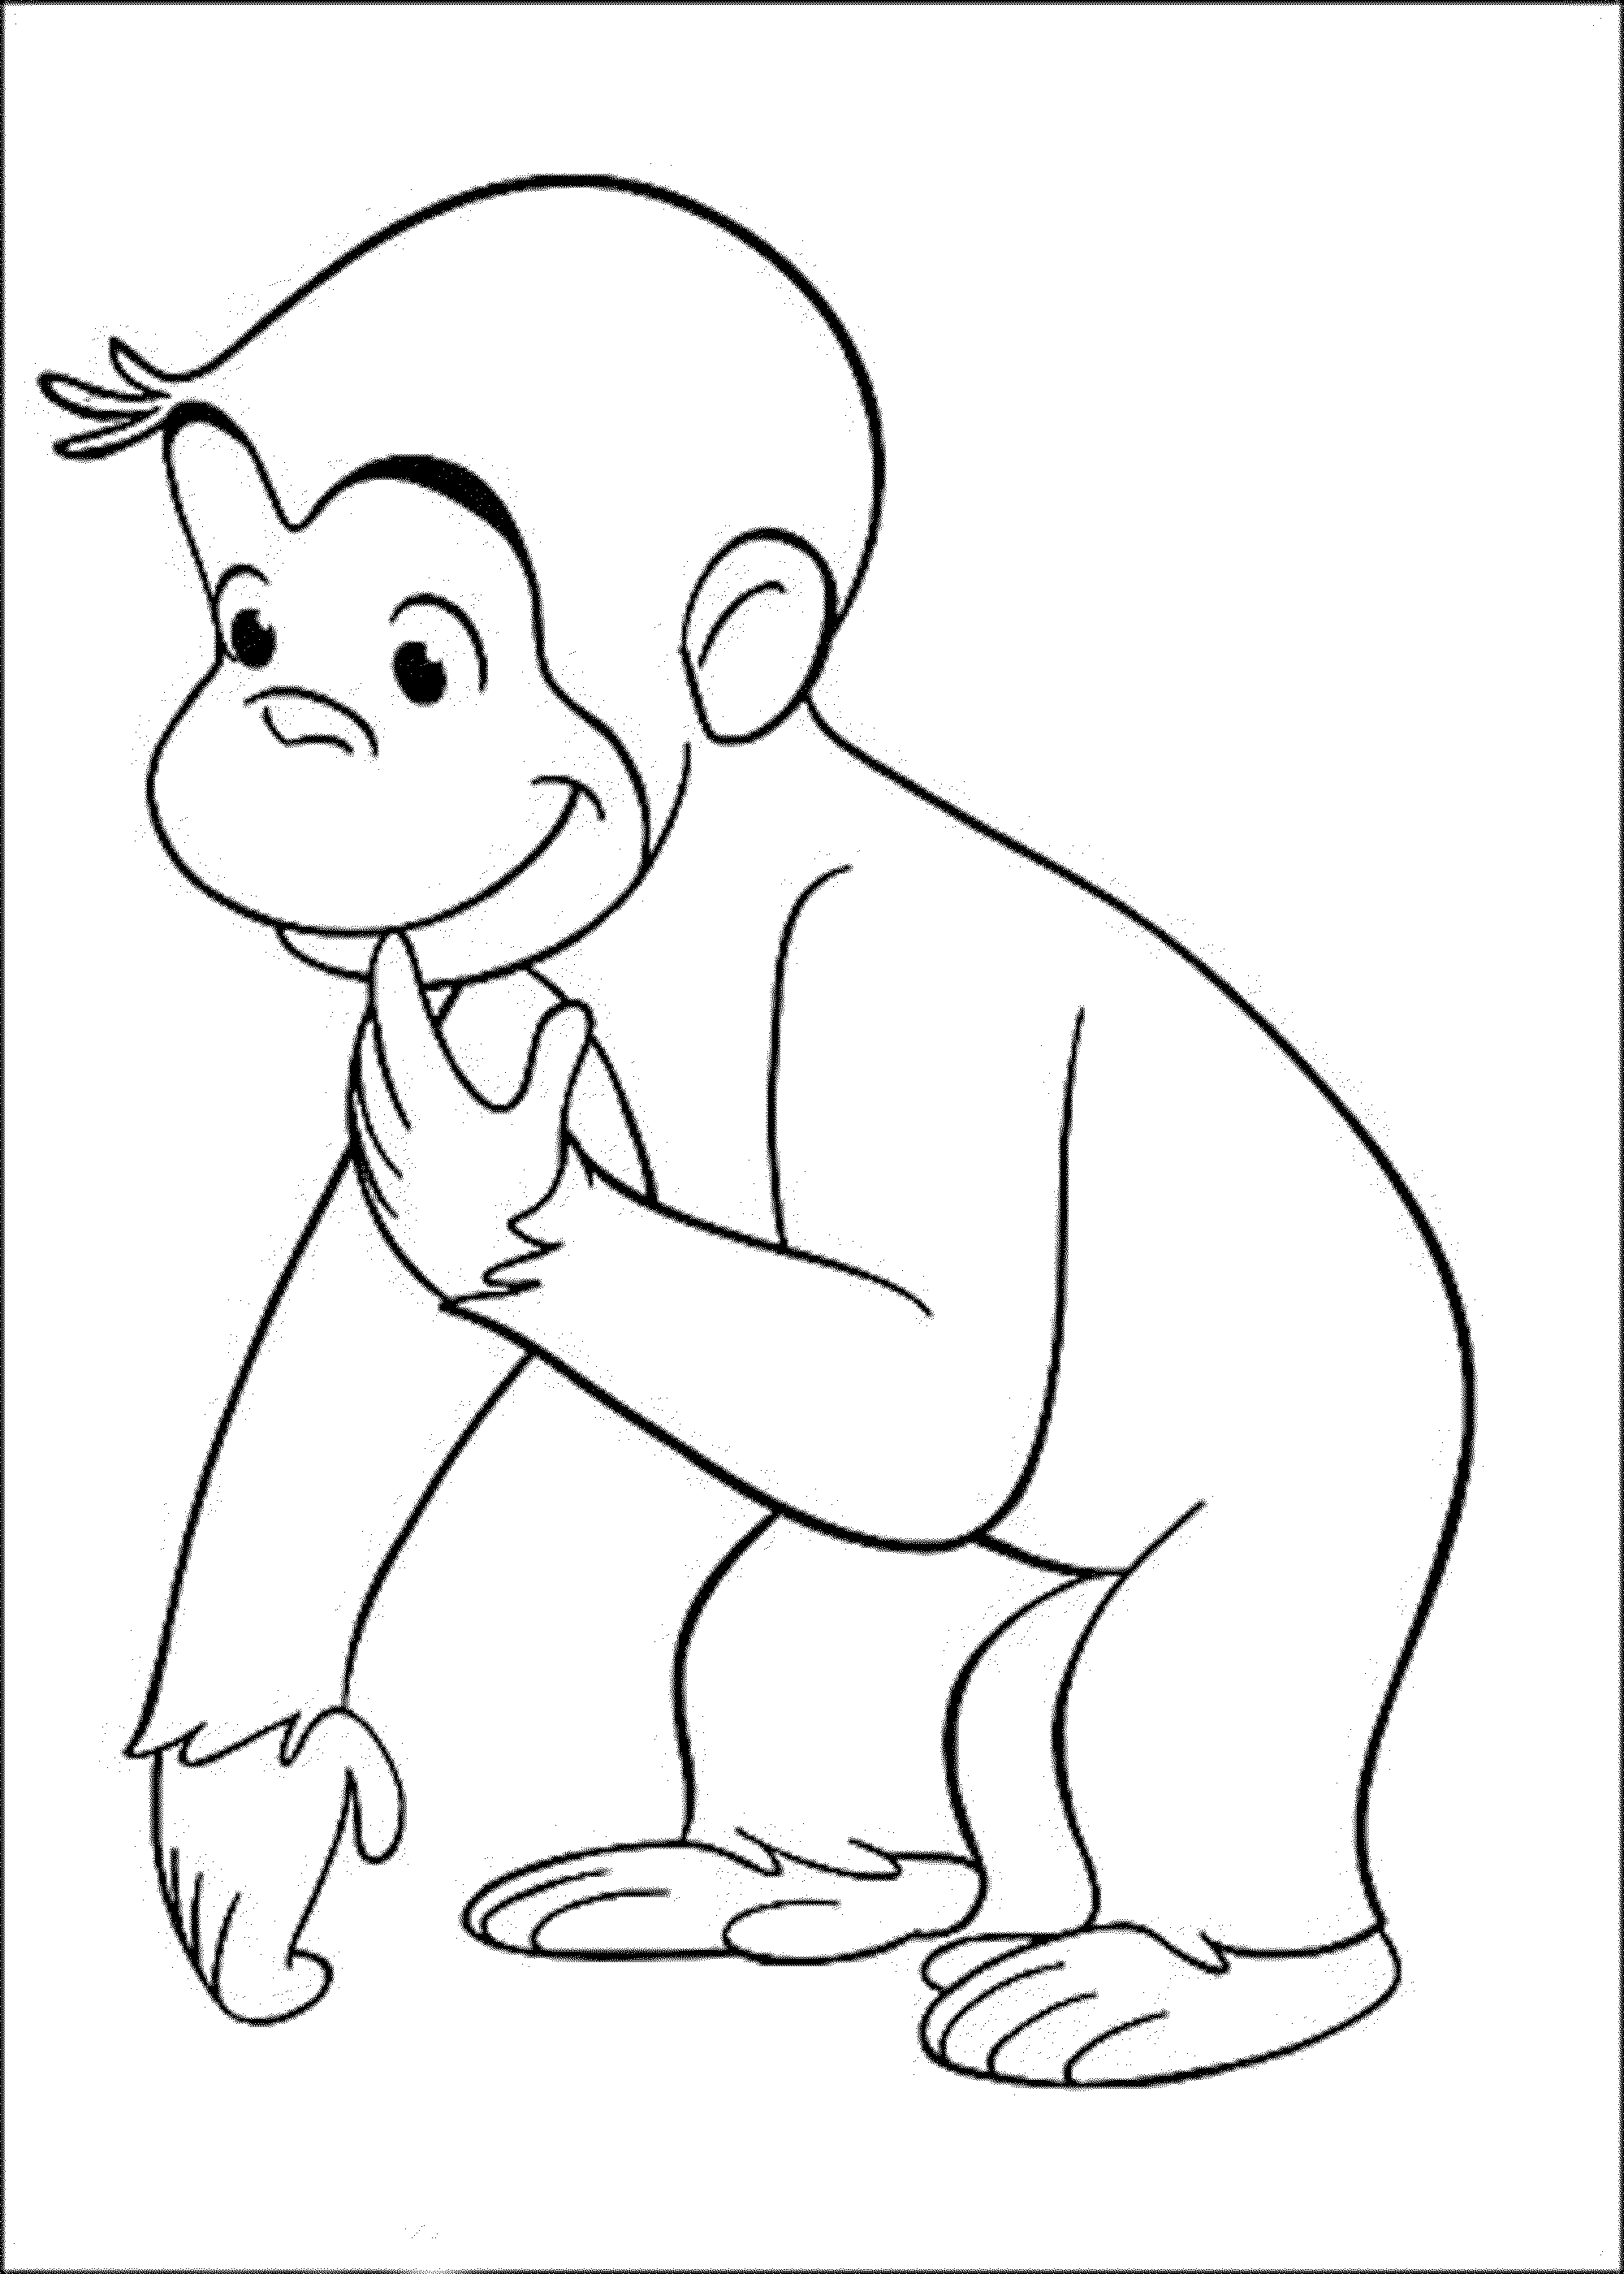 curious george coloring pages - photo#8